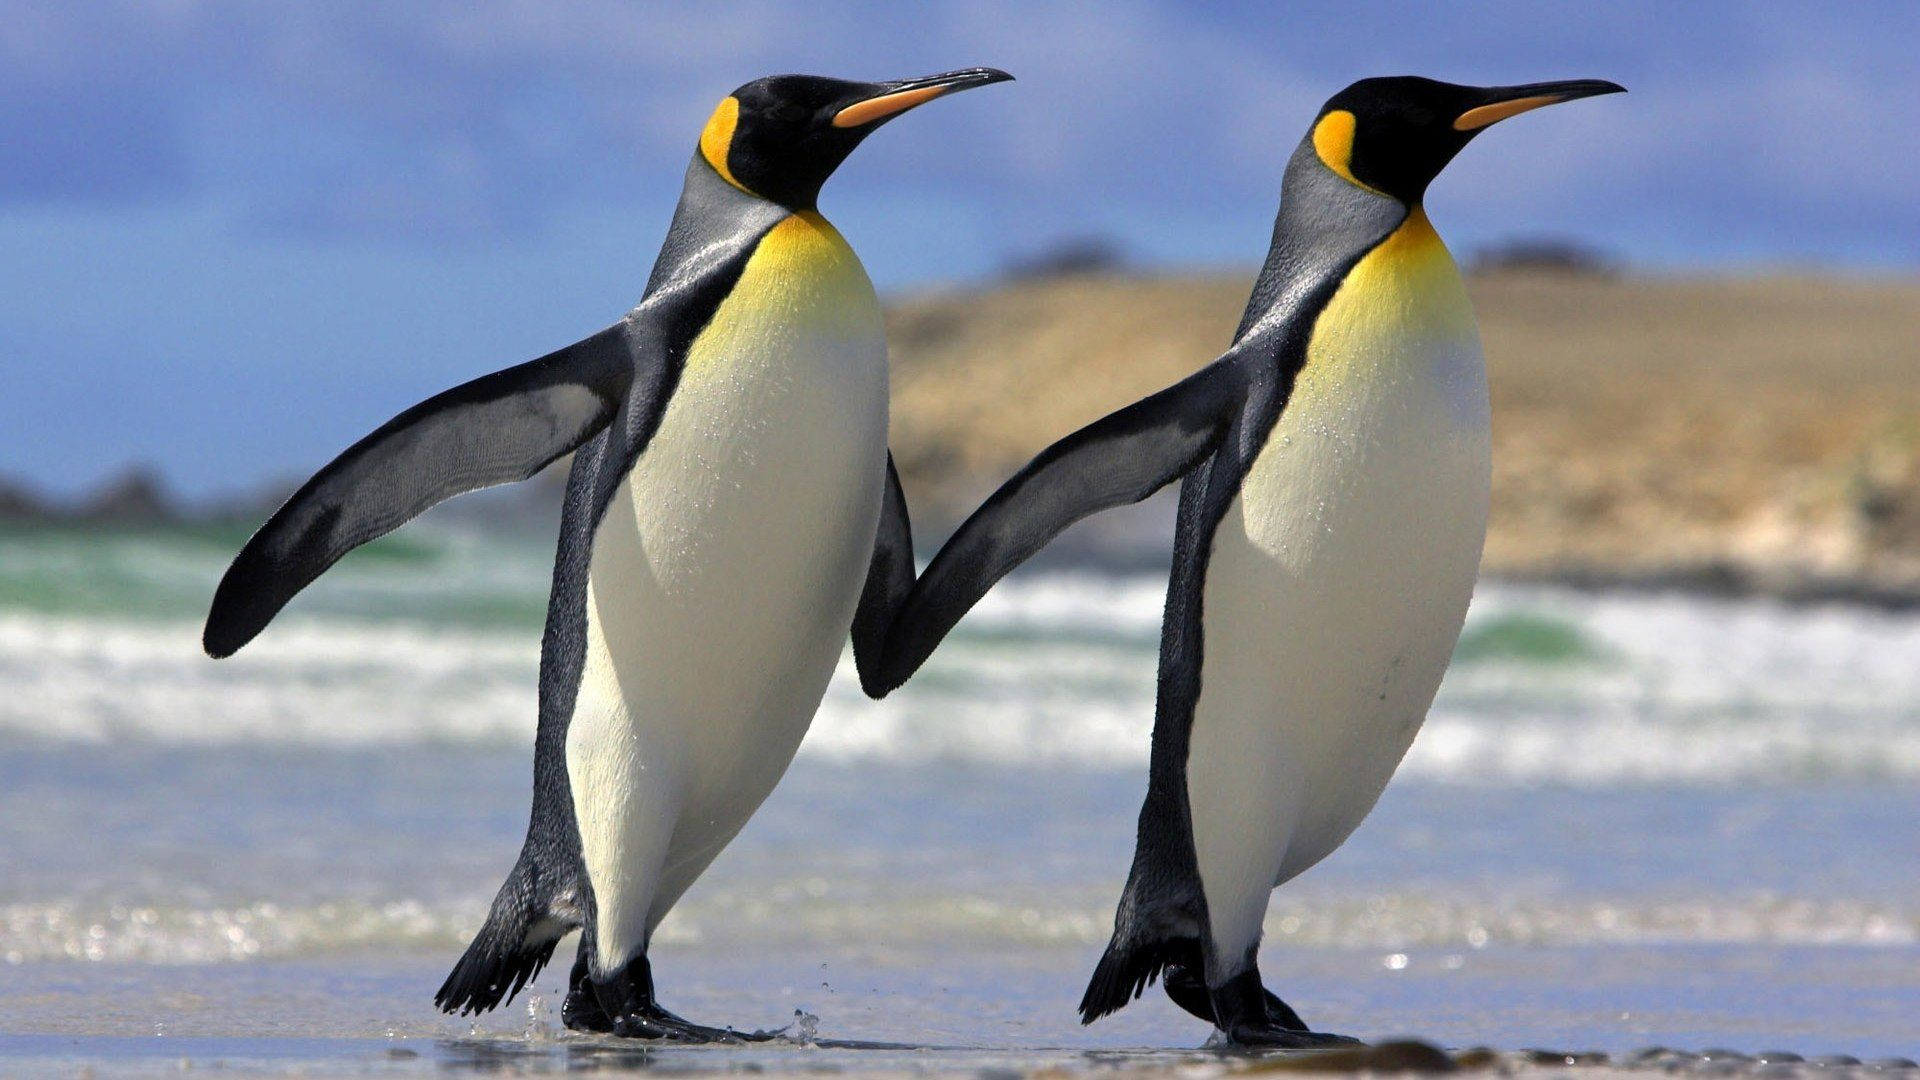 Two penguins running side by side with their wings outstretched so it looks almost like they are holding hands